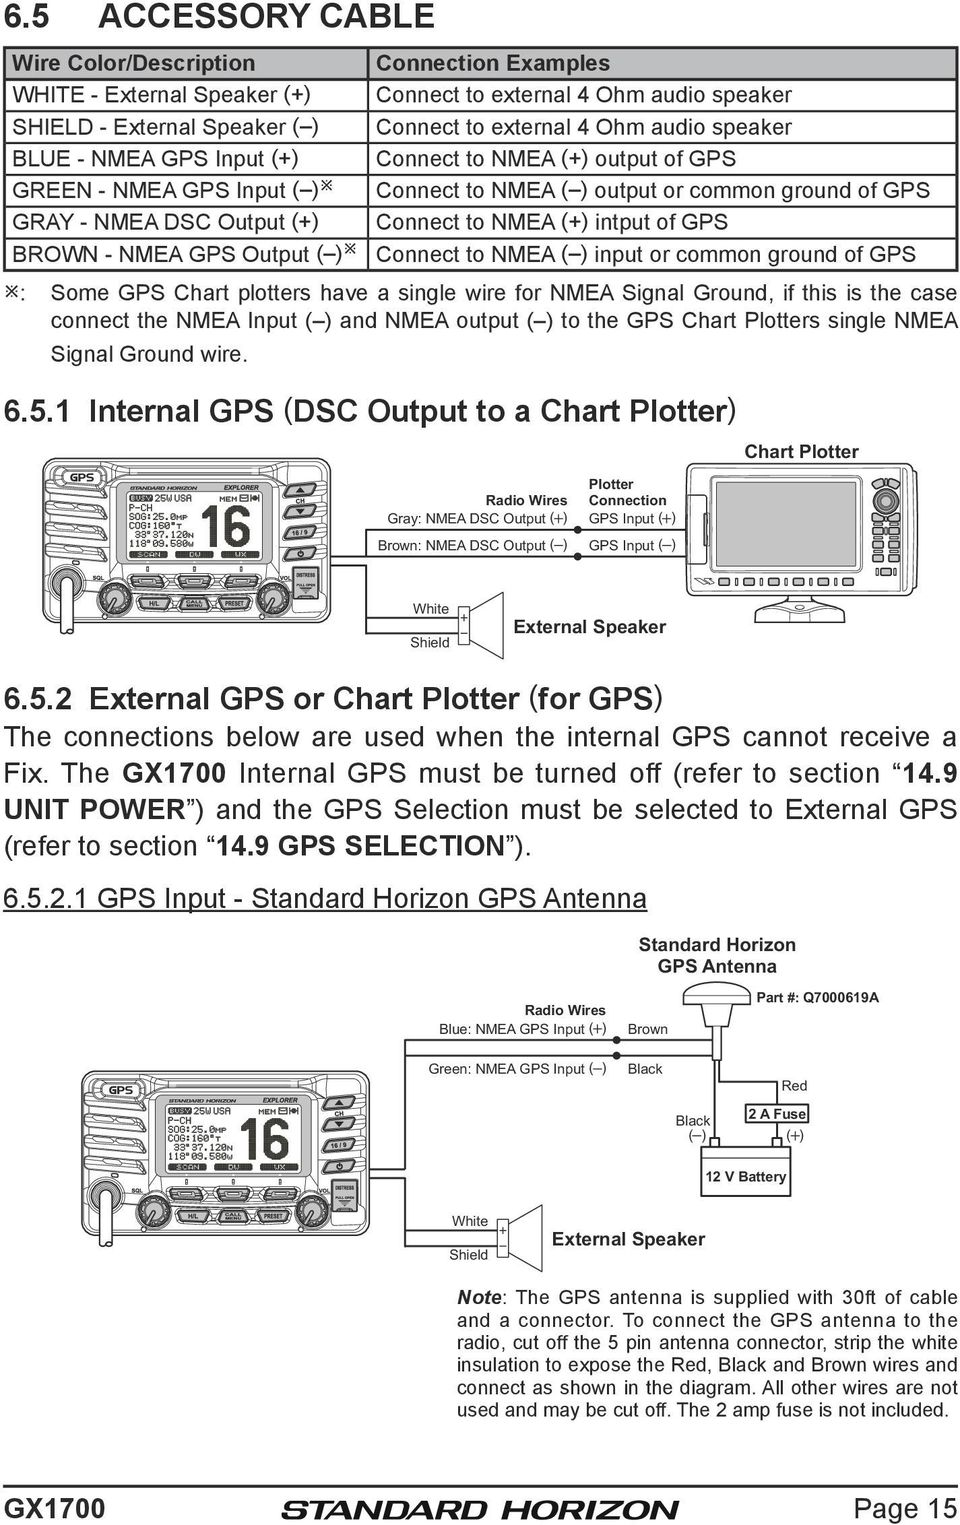 Explorer Gps Gx1700 Owners Manual 25 Watt Vhf Fm Marine Wiring Diagram 160 Key Largo Of Brown Nmea Output Connect To Input Or